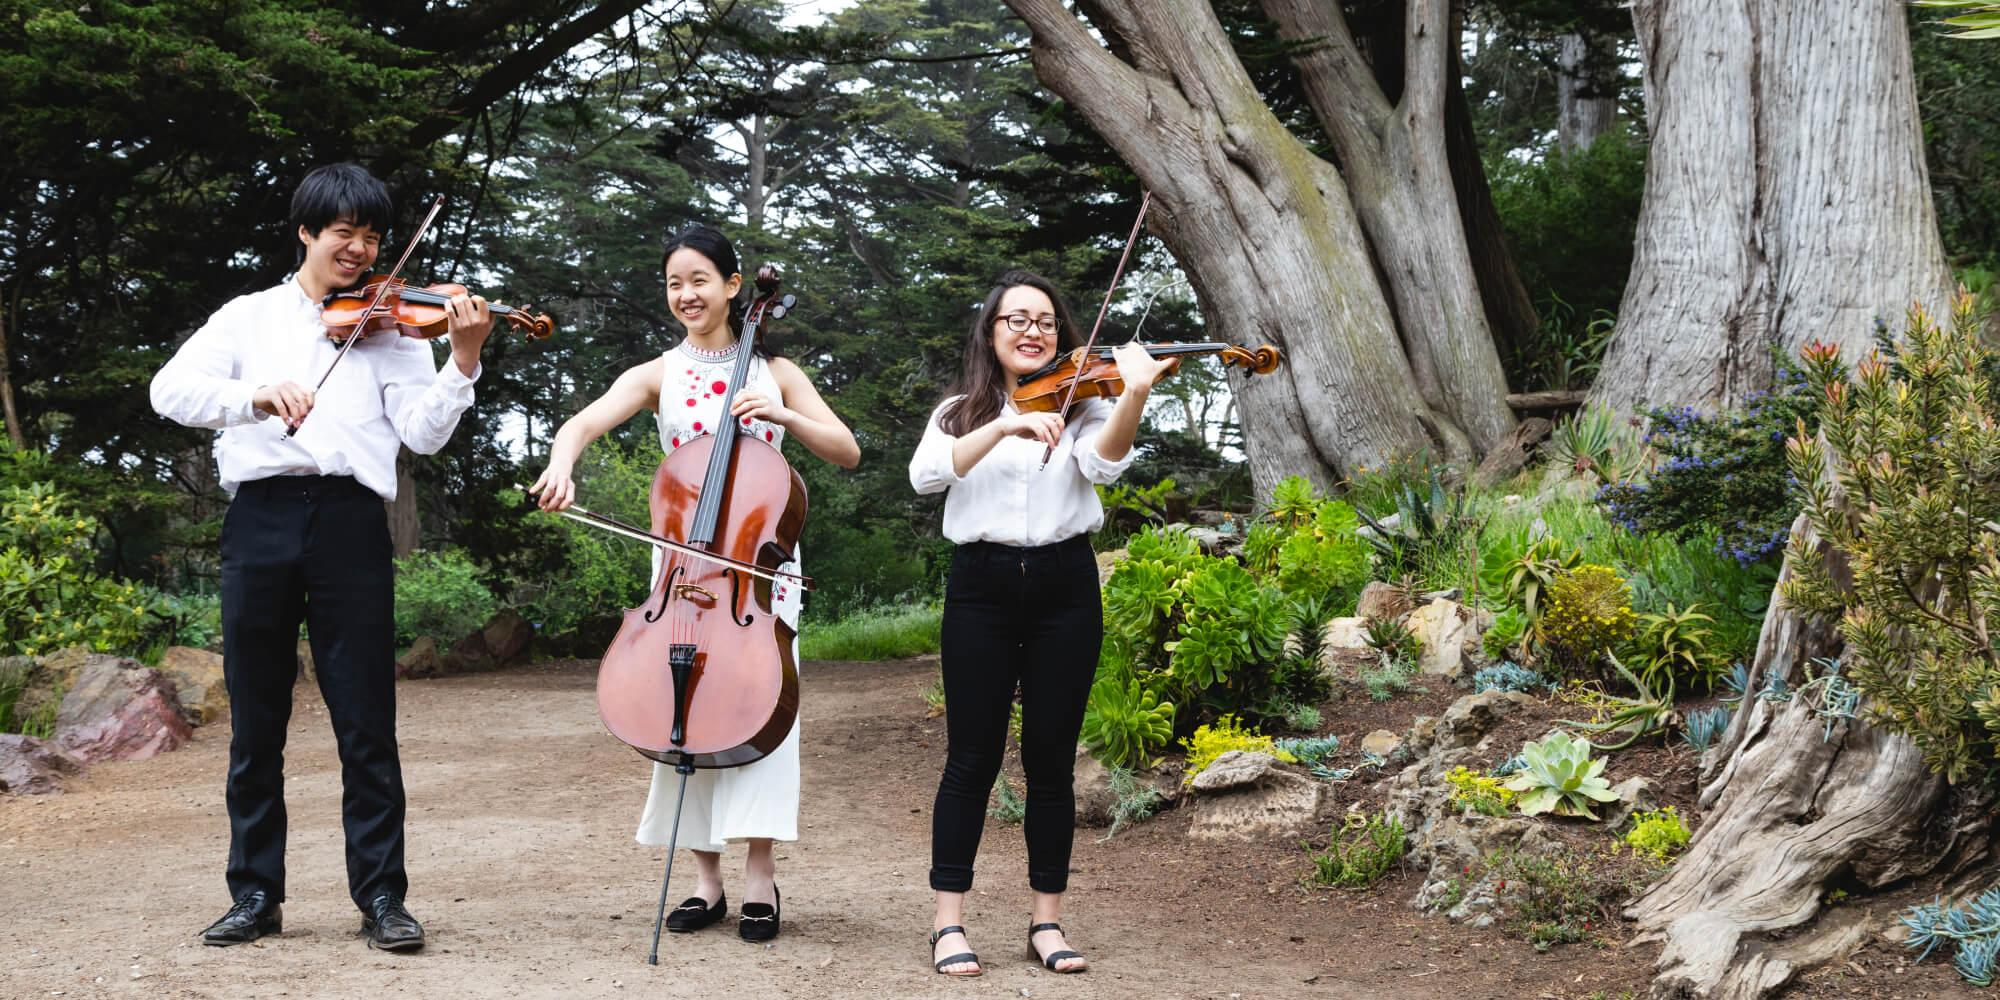 Conservatory students playing music in the park